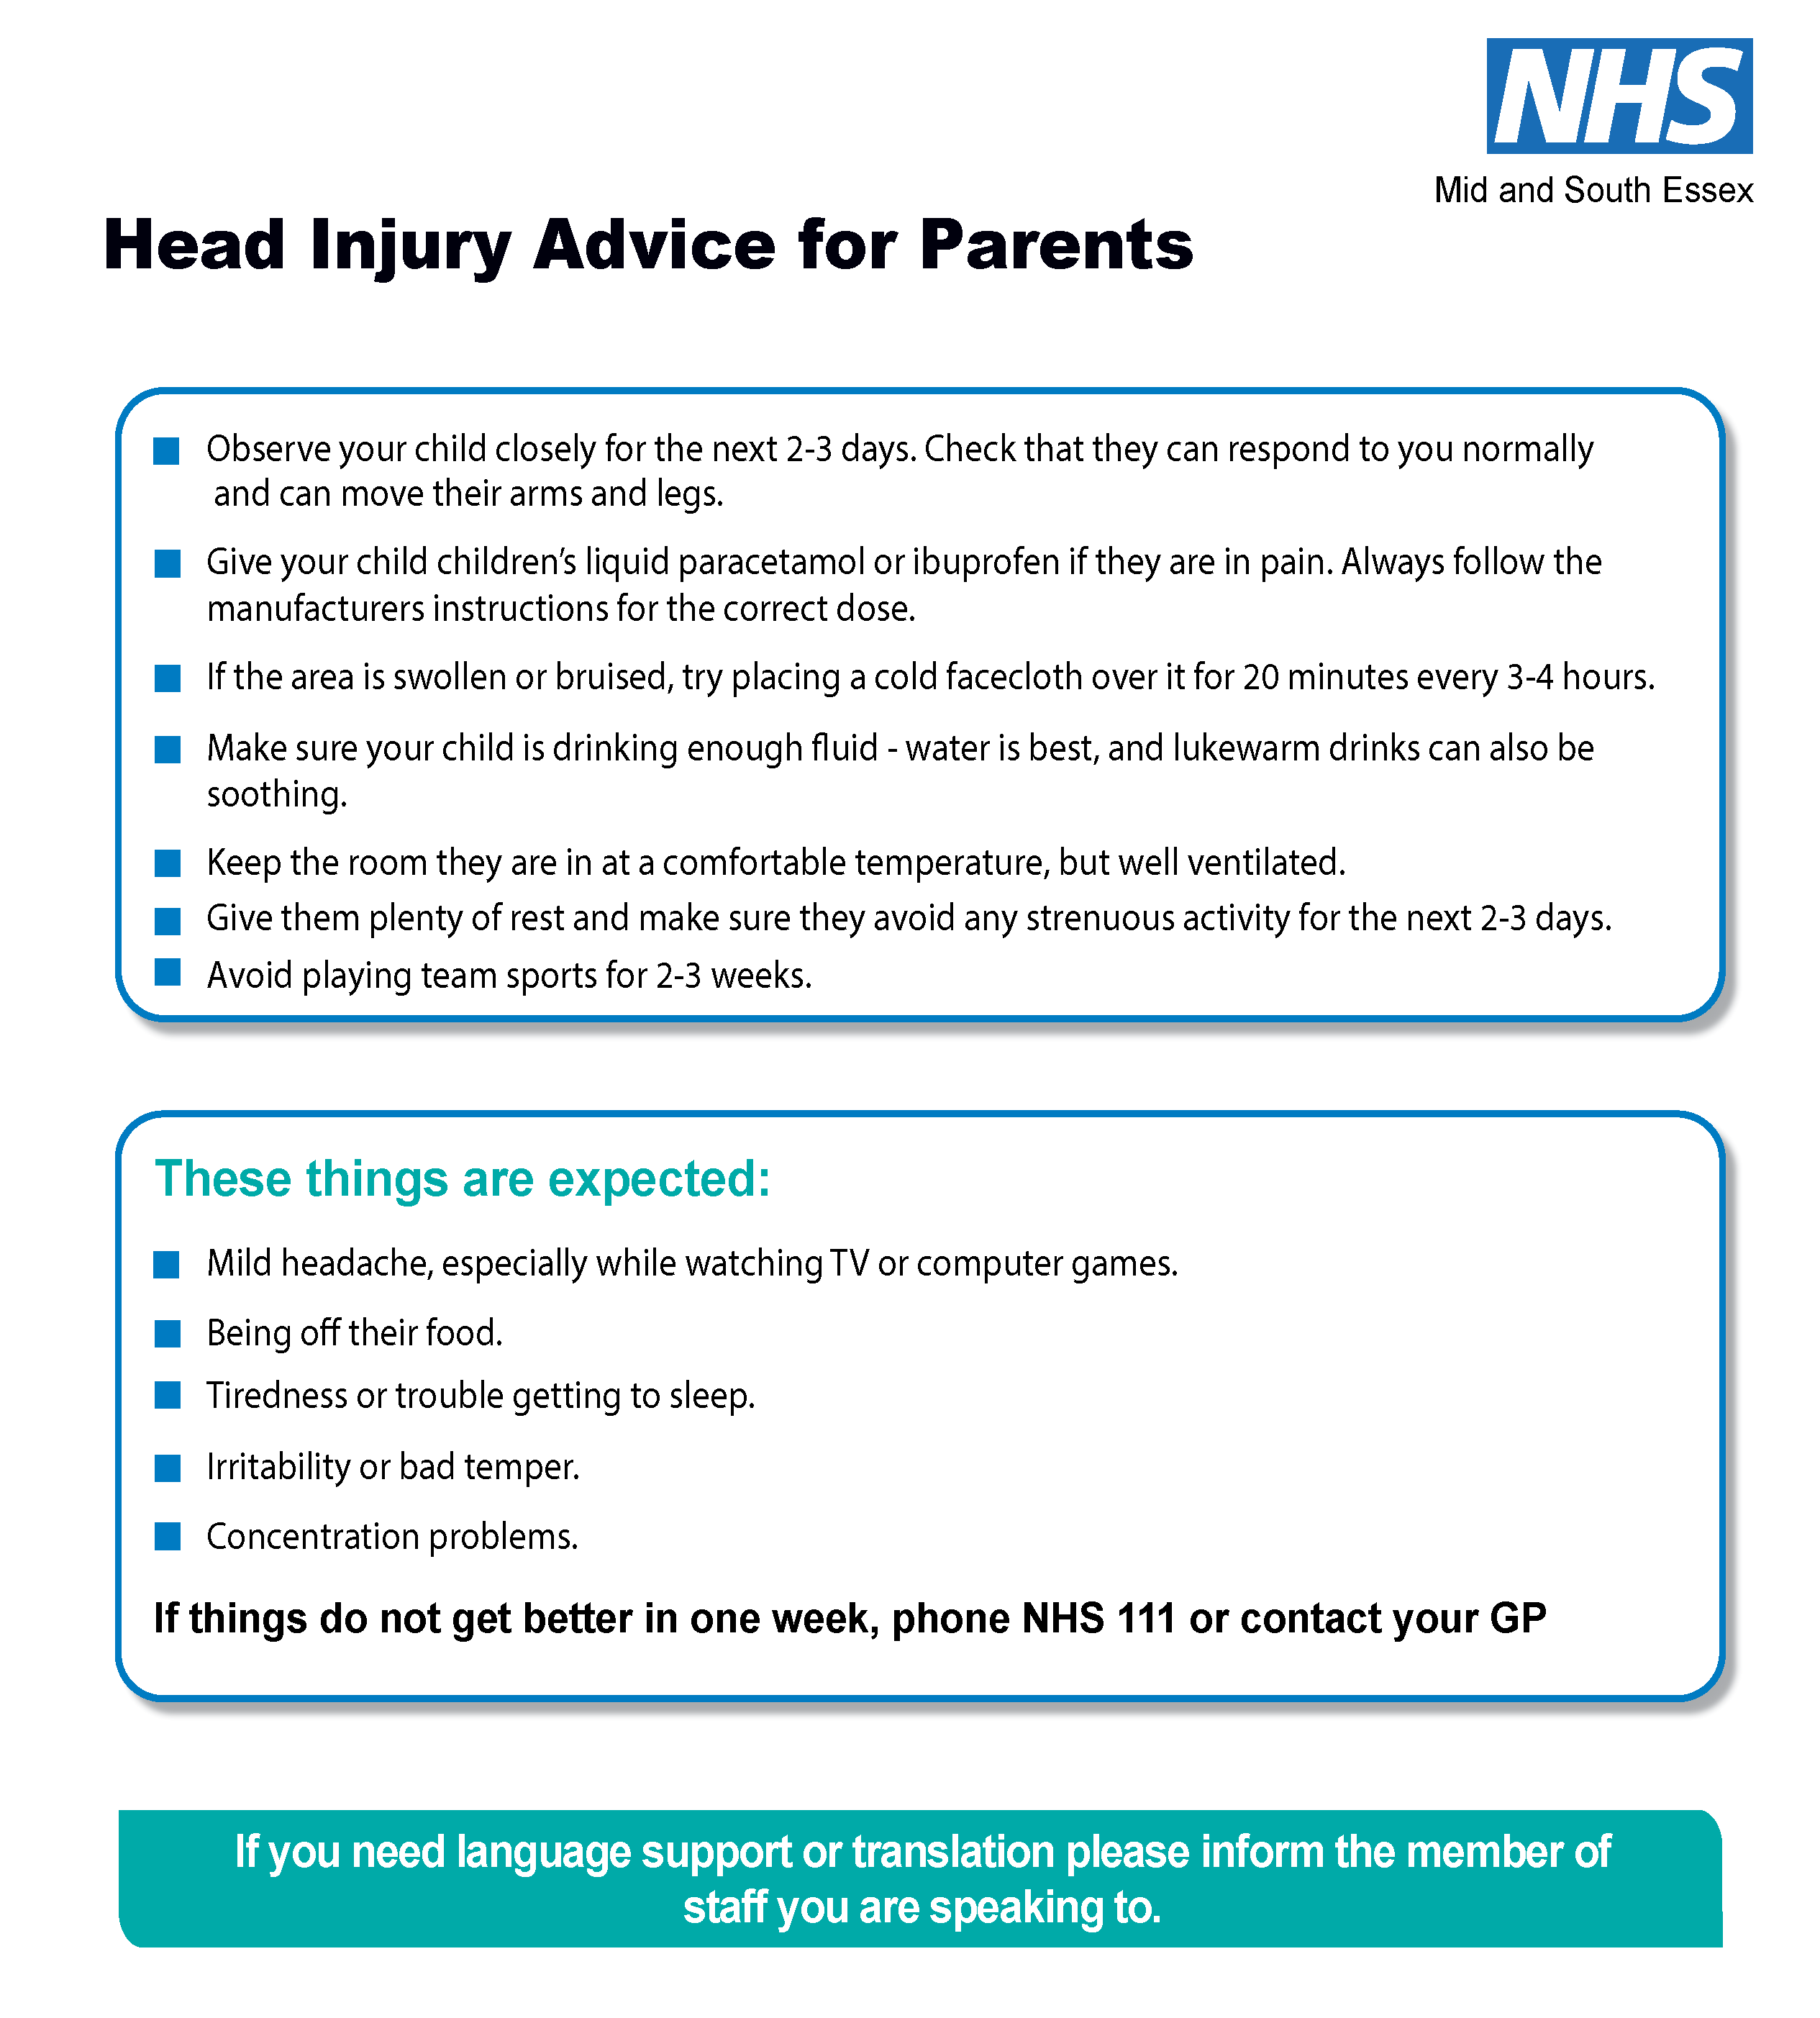 Head injury advice sheet for parents latest version 3 Page 2